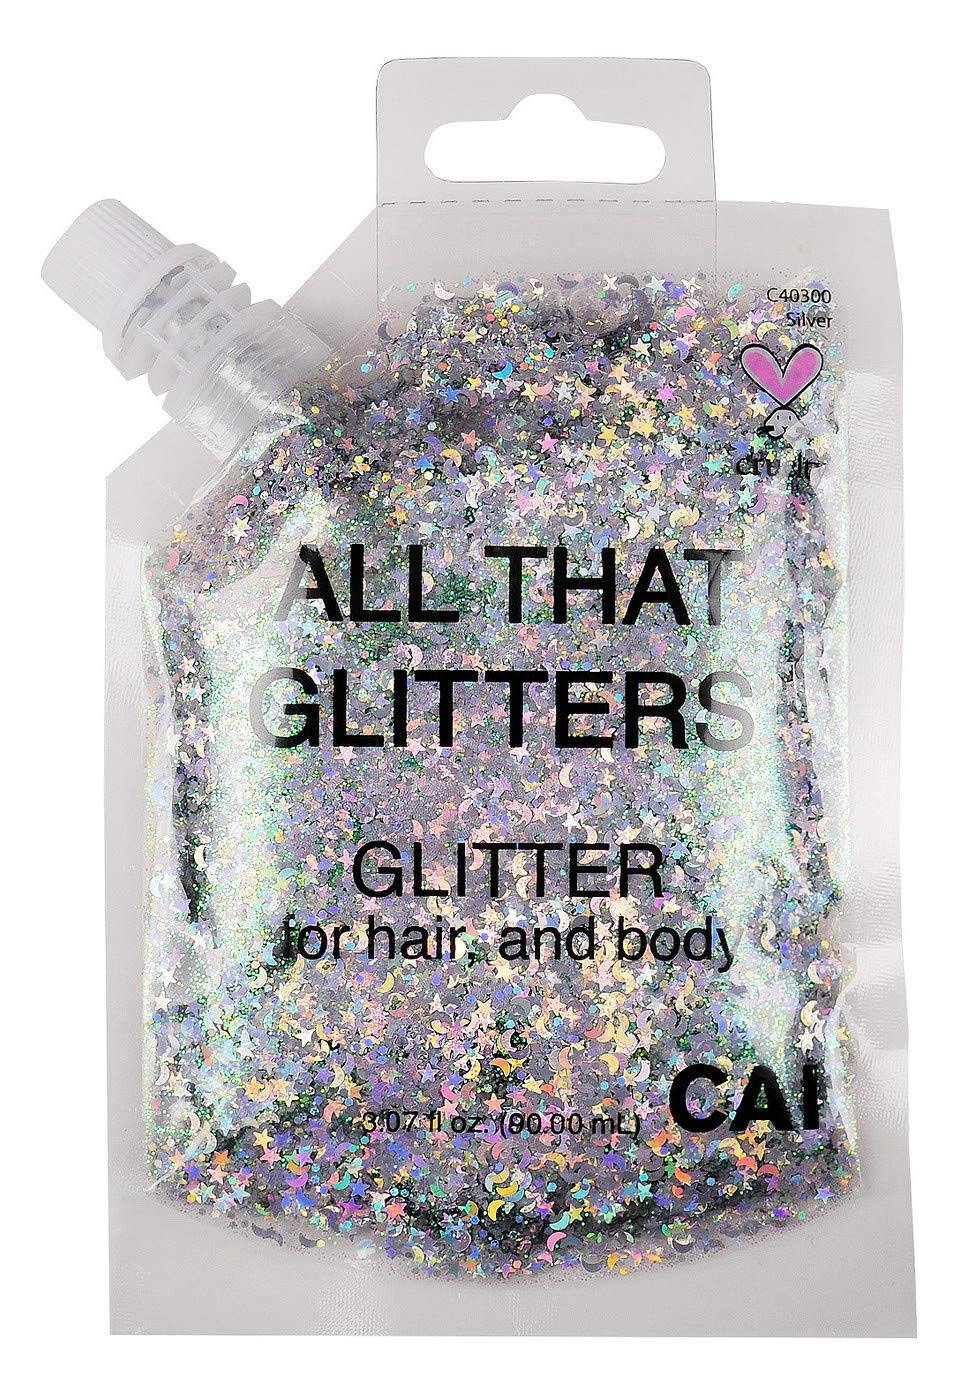 New Hair and Body Glitter Bag Pouch Holographic Cosmetic Grade Glamour (SILVER)